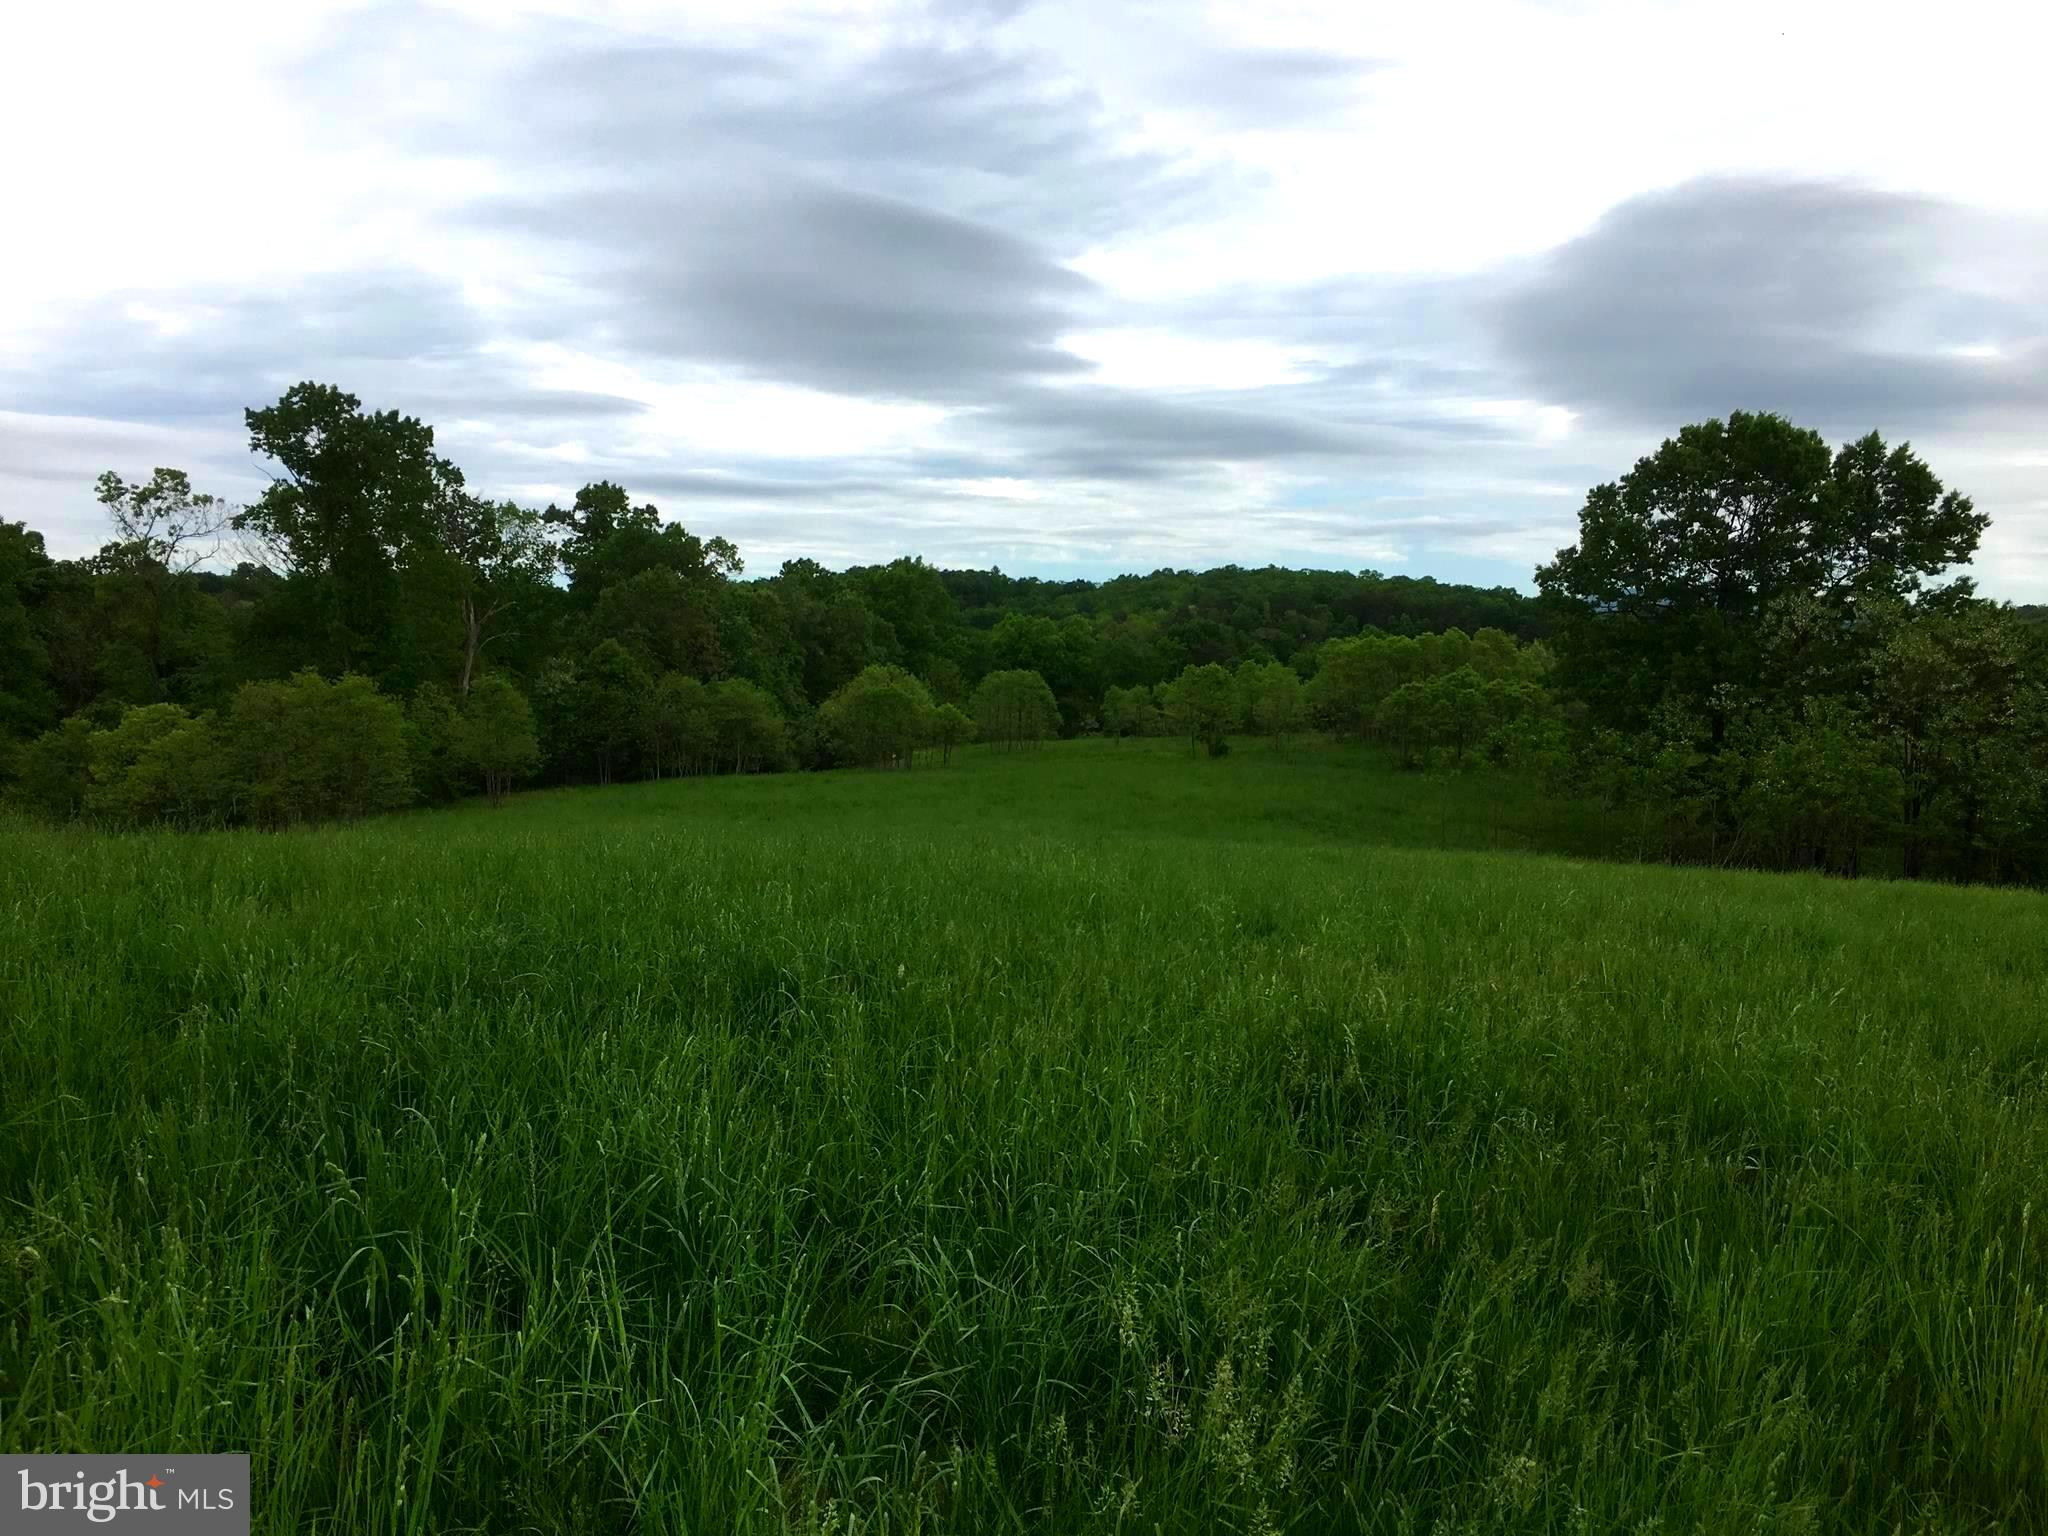 49 53 ACRES PROCESS, Hedgesville, WV 25427 $385,000 www